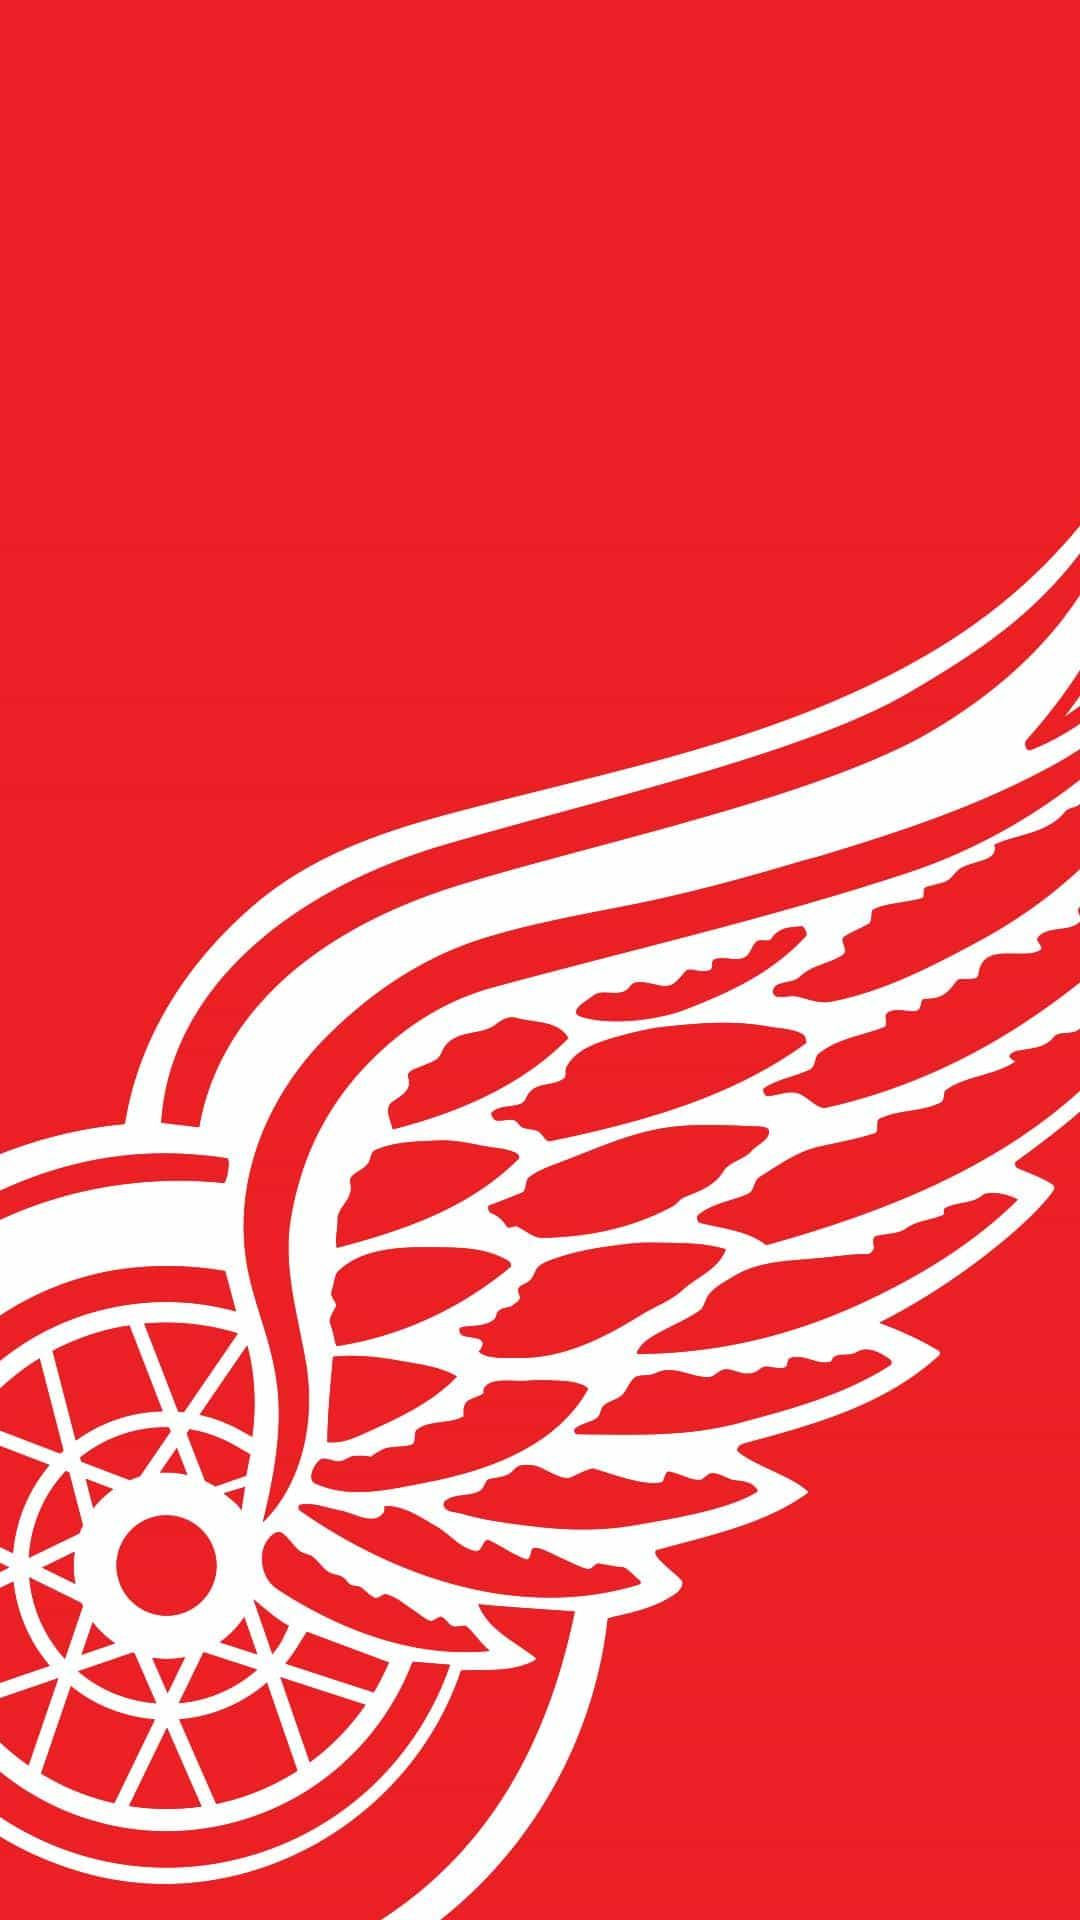 Http Mobw Org 17266 Red Wings Android Wallpaper Html Red Wings